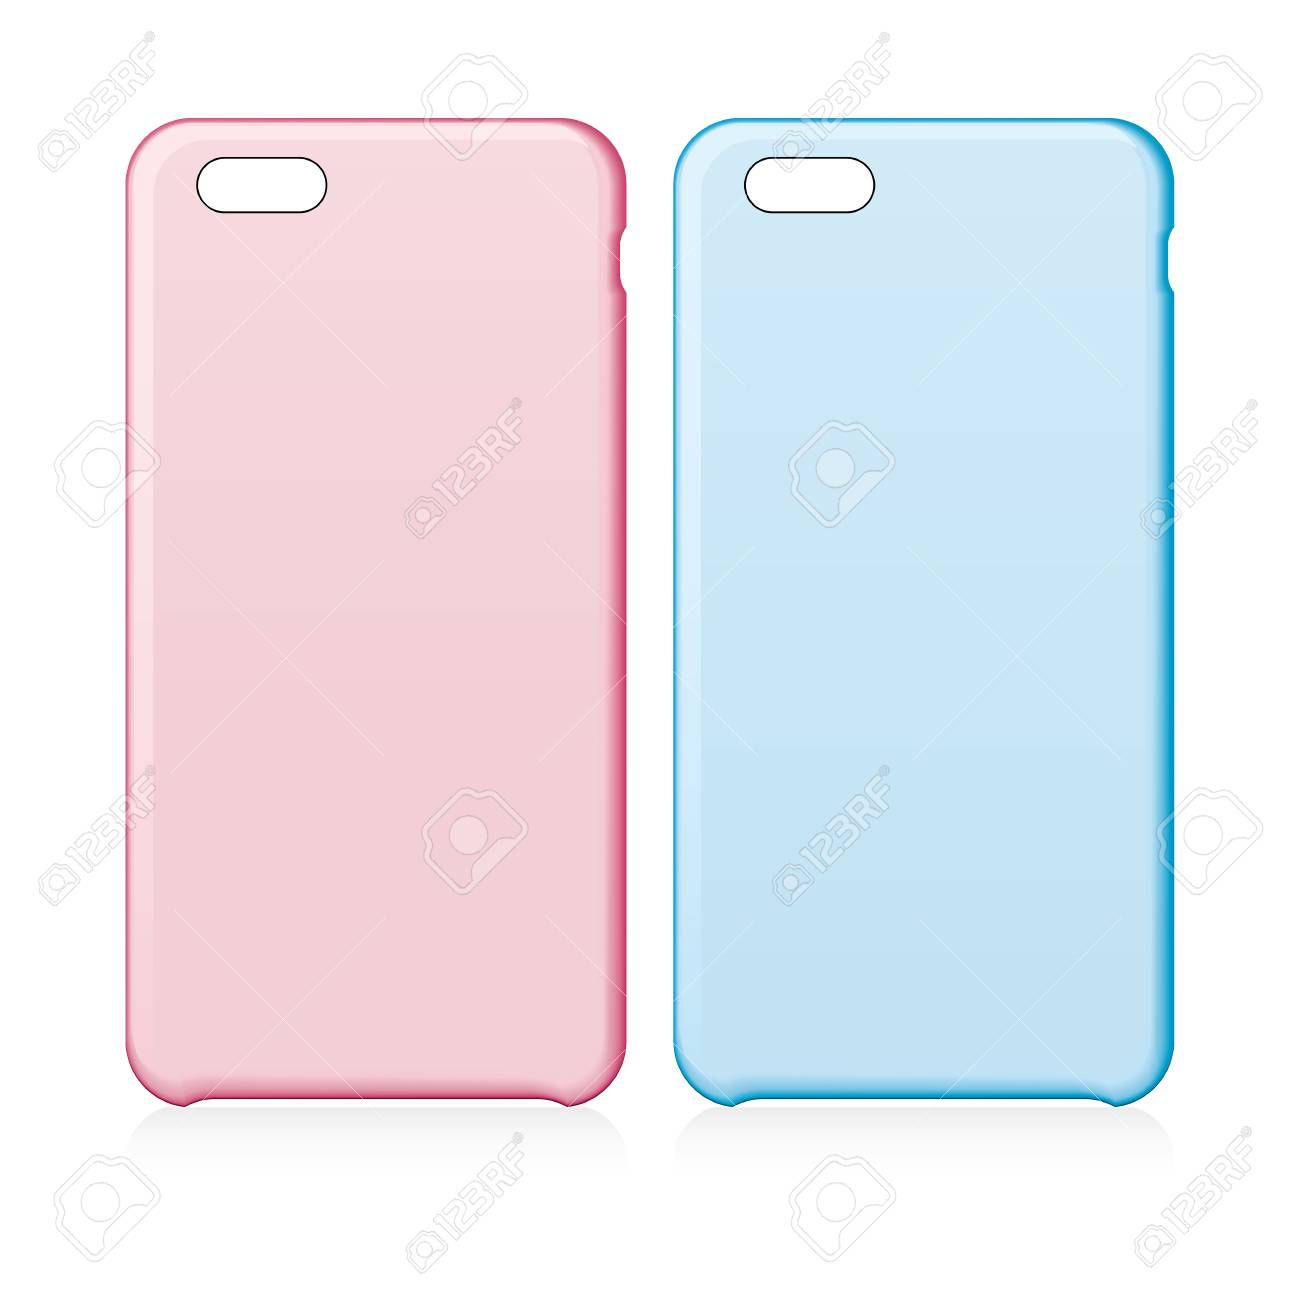 Smartphone Cases Pink And Blue Smartphone Cases